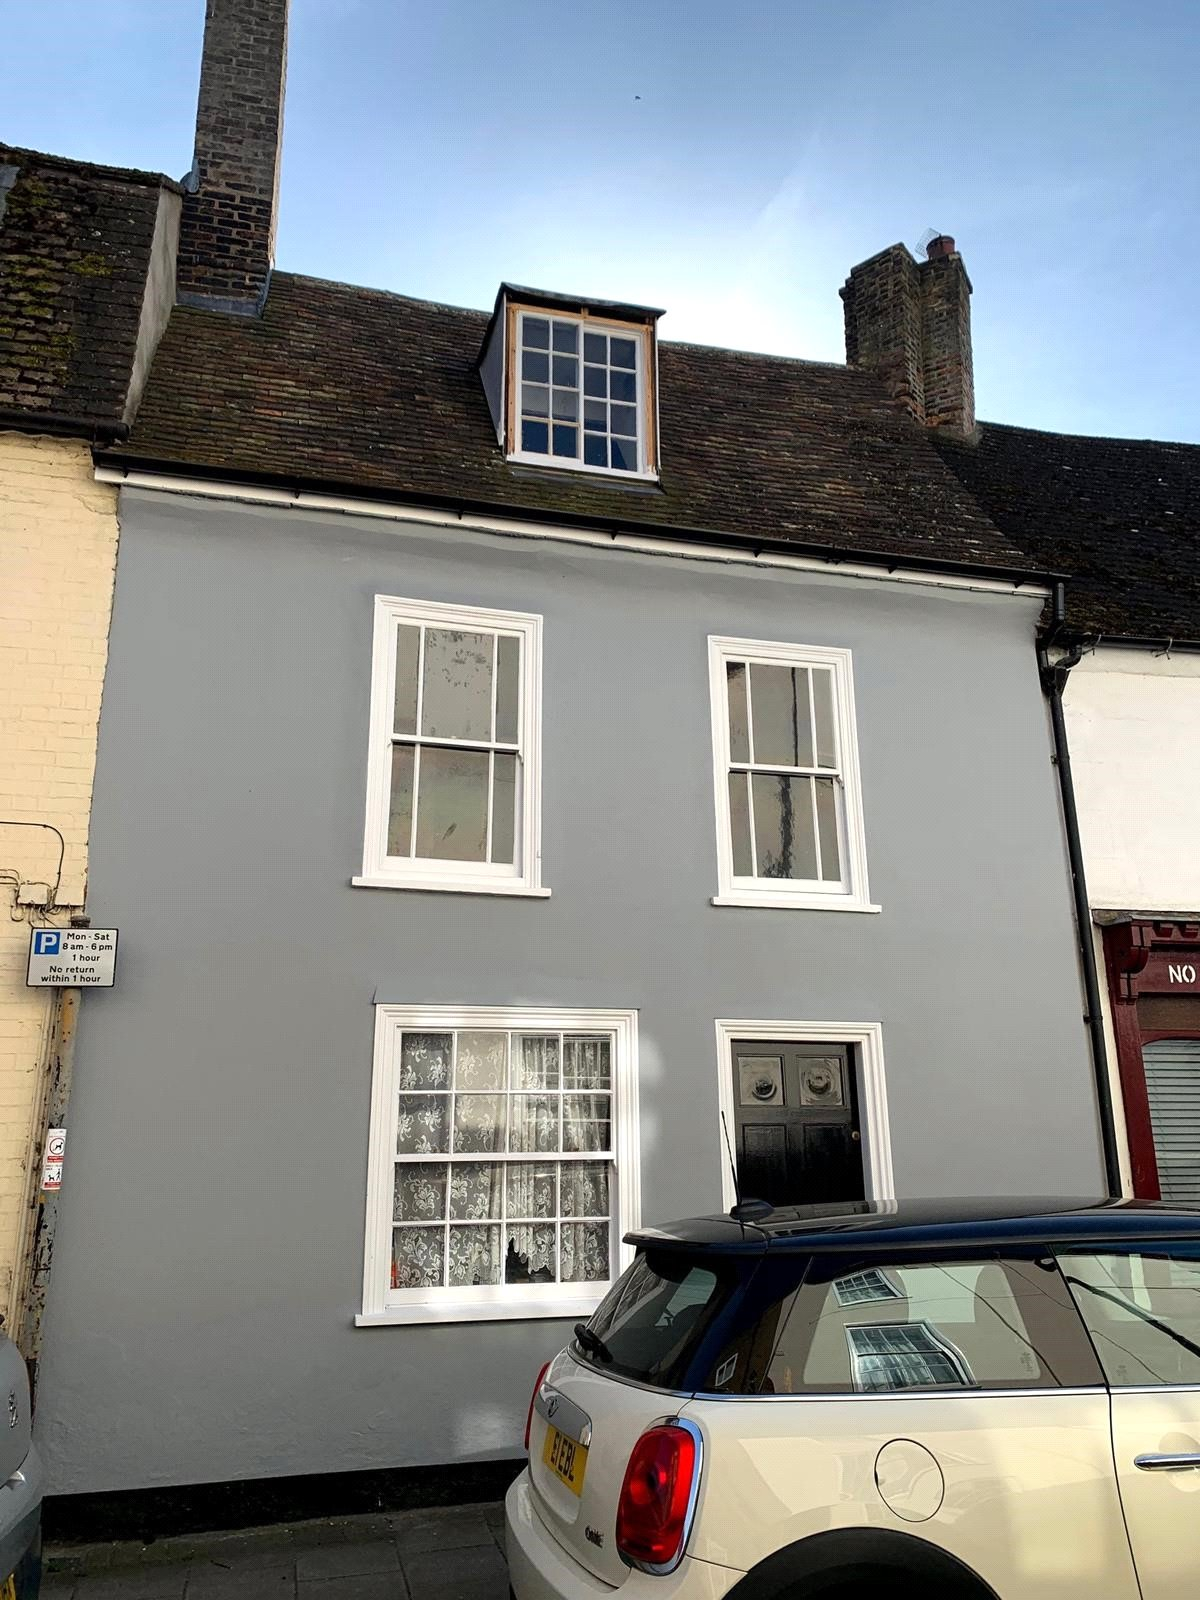 2 bed house for sale in Huntingdon, PE29 3TE - Property Image 1